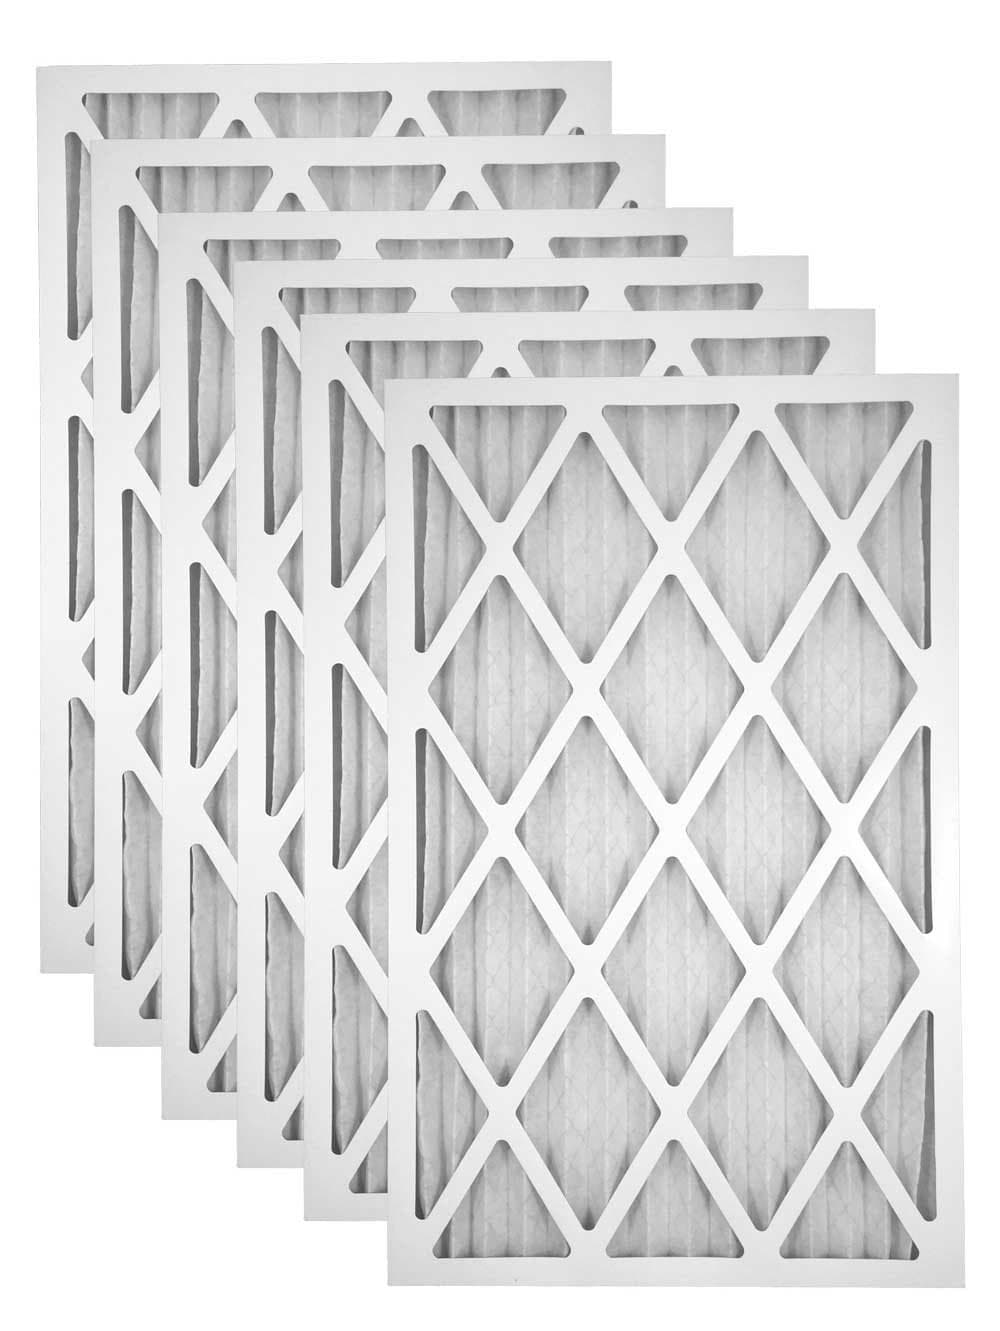 12x36x1 Merv 11 AC Furnace Filter - Case of 6